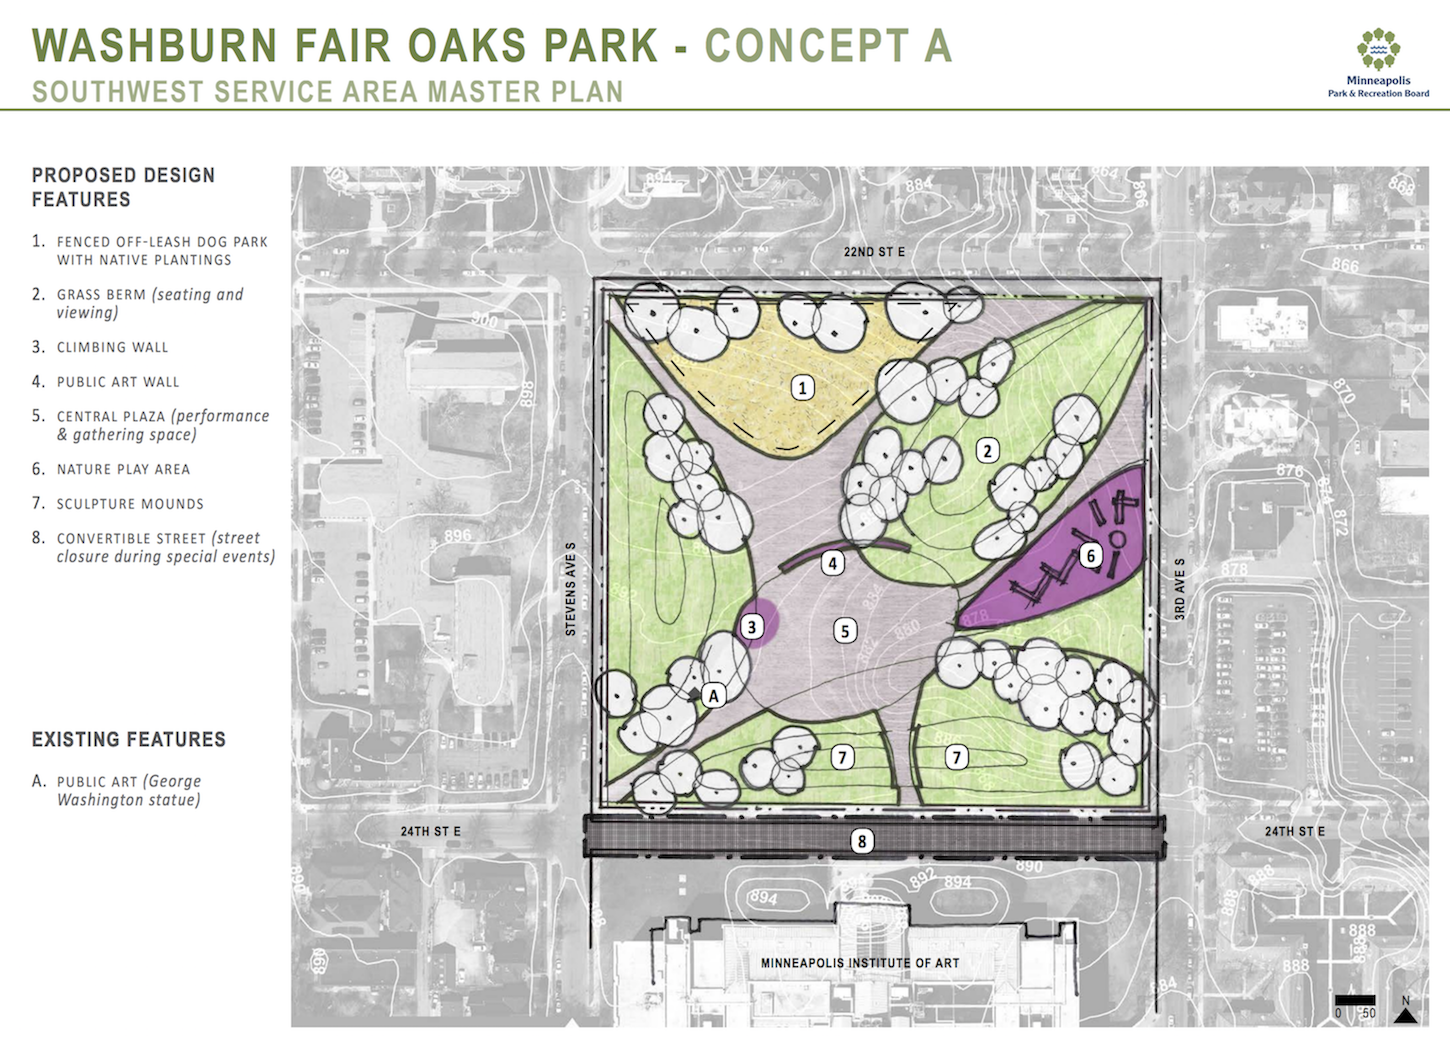 One of the concepts for Washburn Fair Oaks Park in Whittier. Image from Minneapolis Park and Recreation Board.